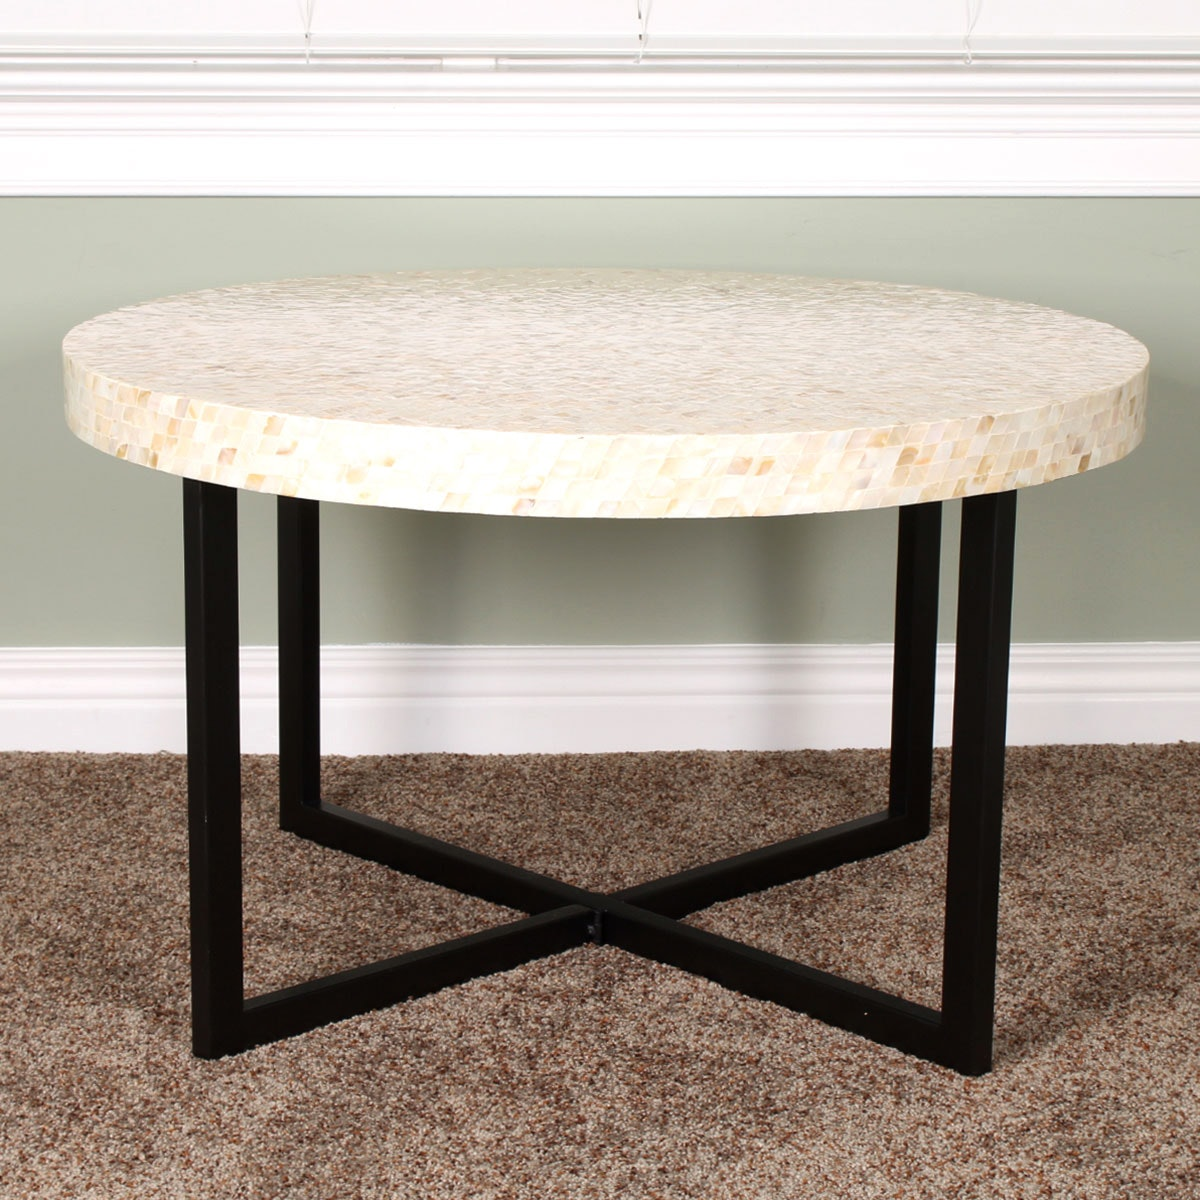 Pier 1 Imports Mother Of Pearl Round Coffee Table ...